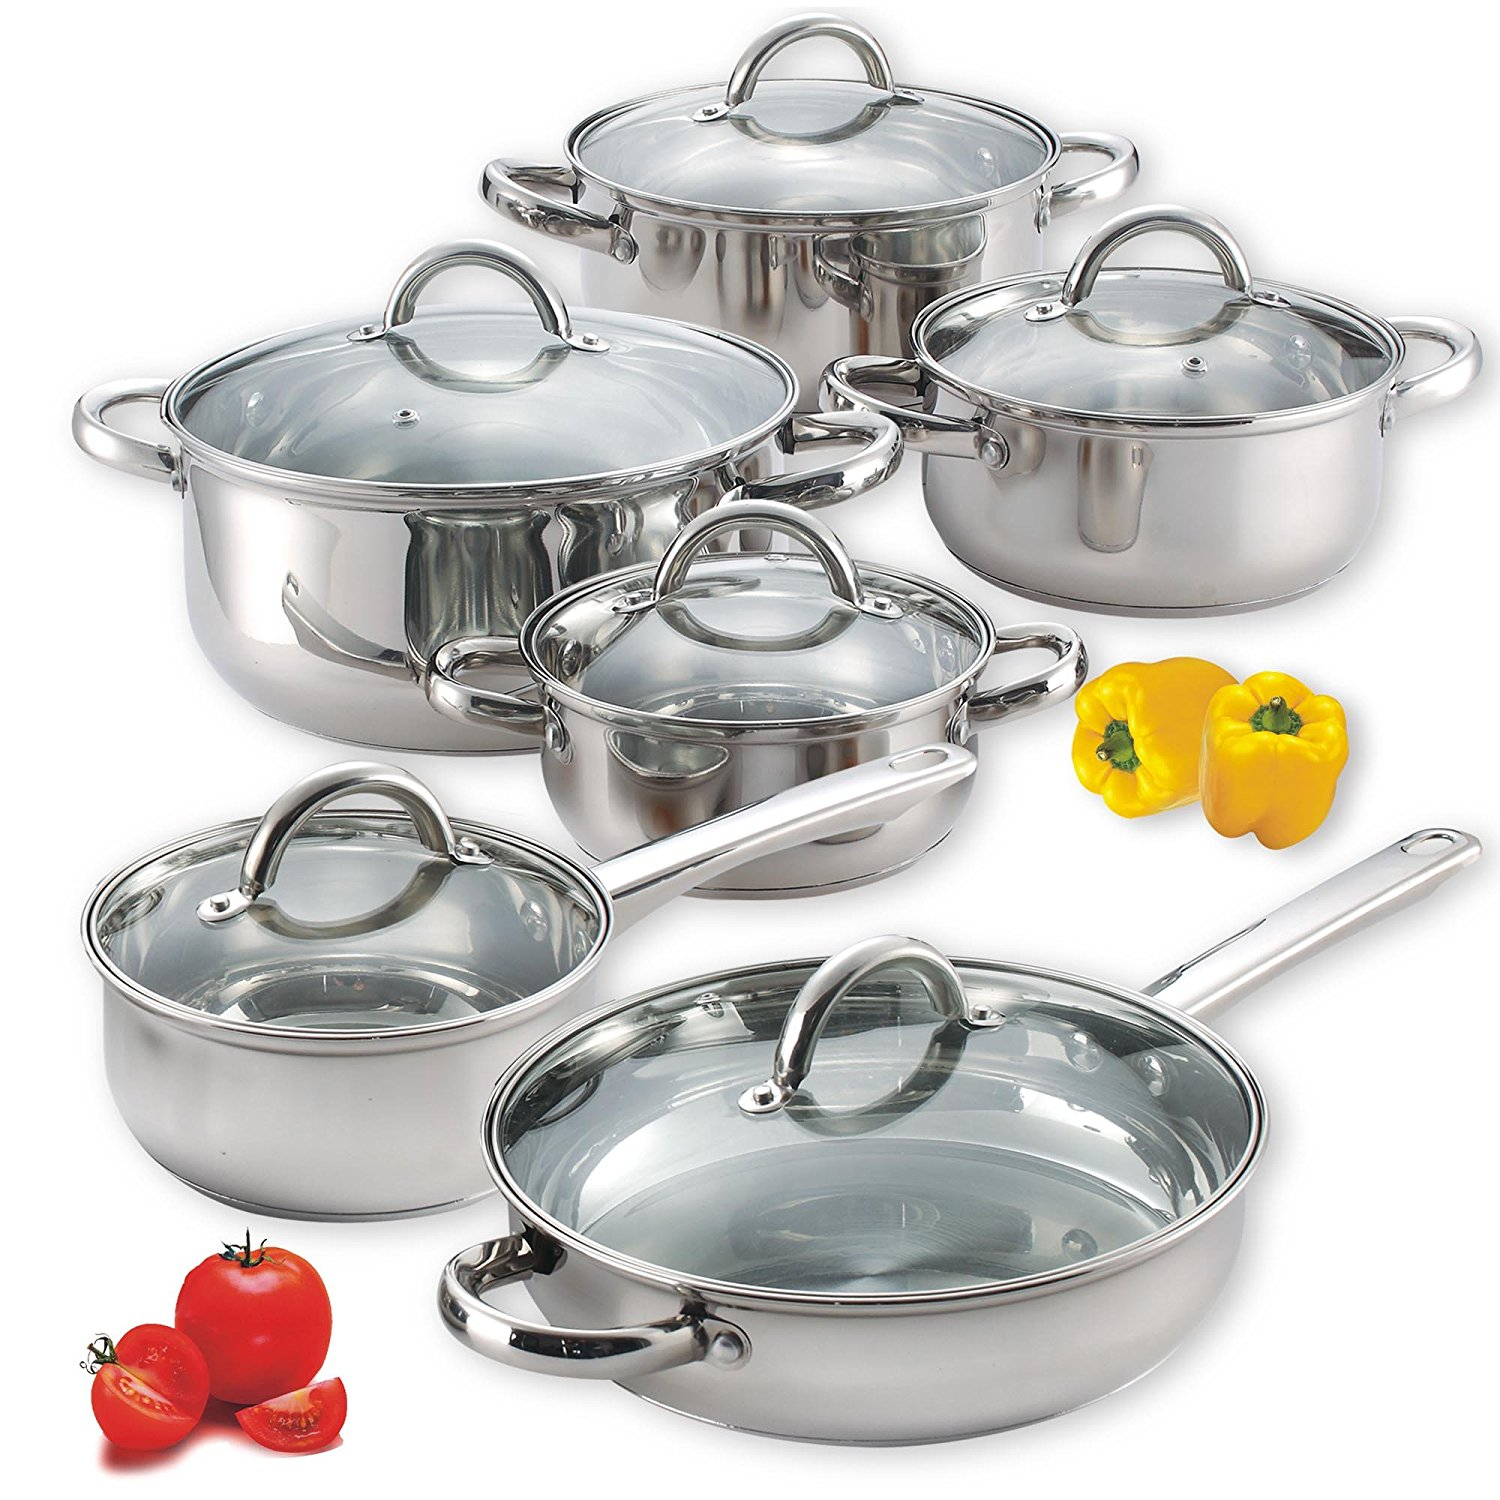 Cook N Home Cookware Set.jpg